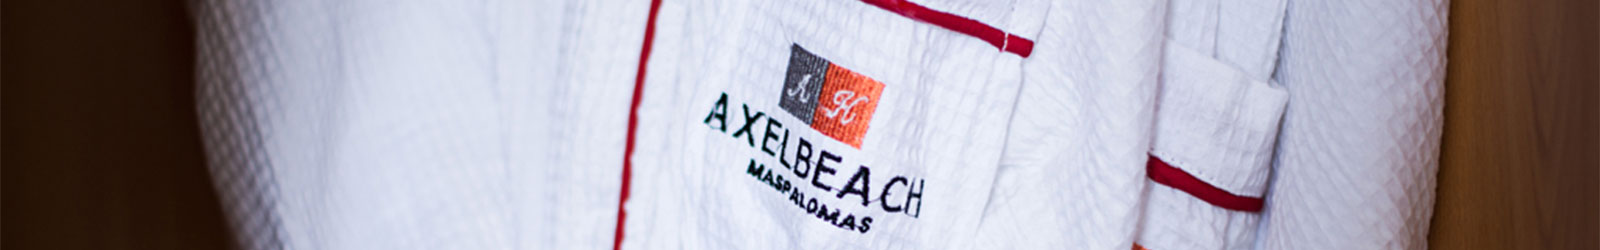 AxelBeach Maspalomas - Rooms